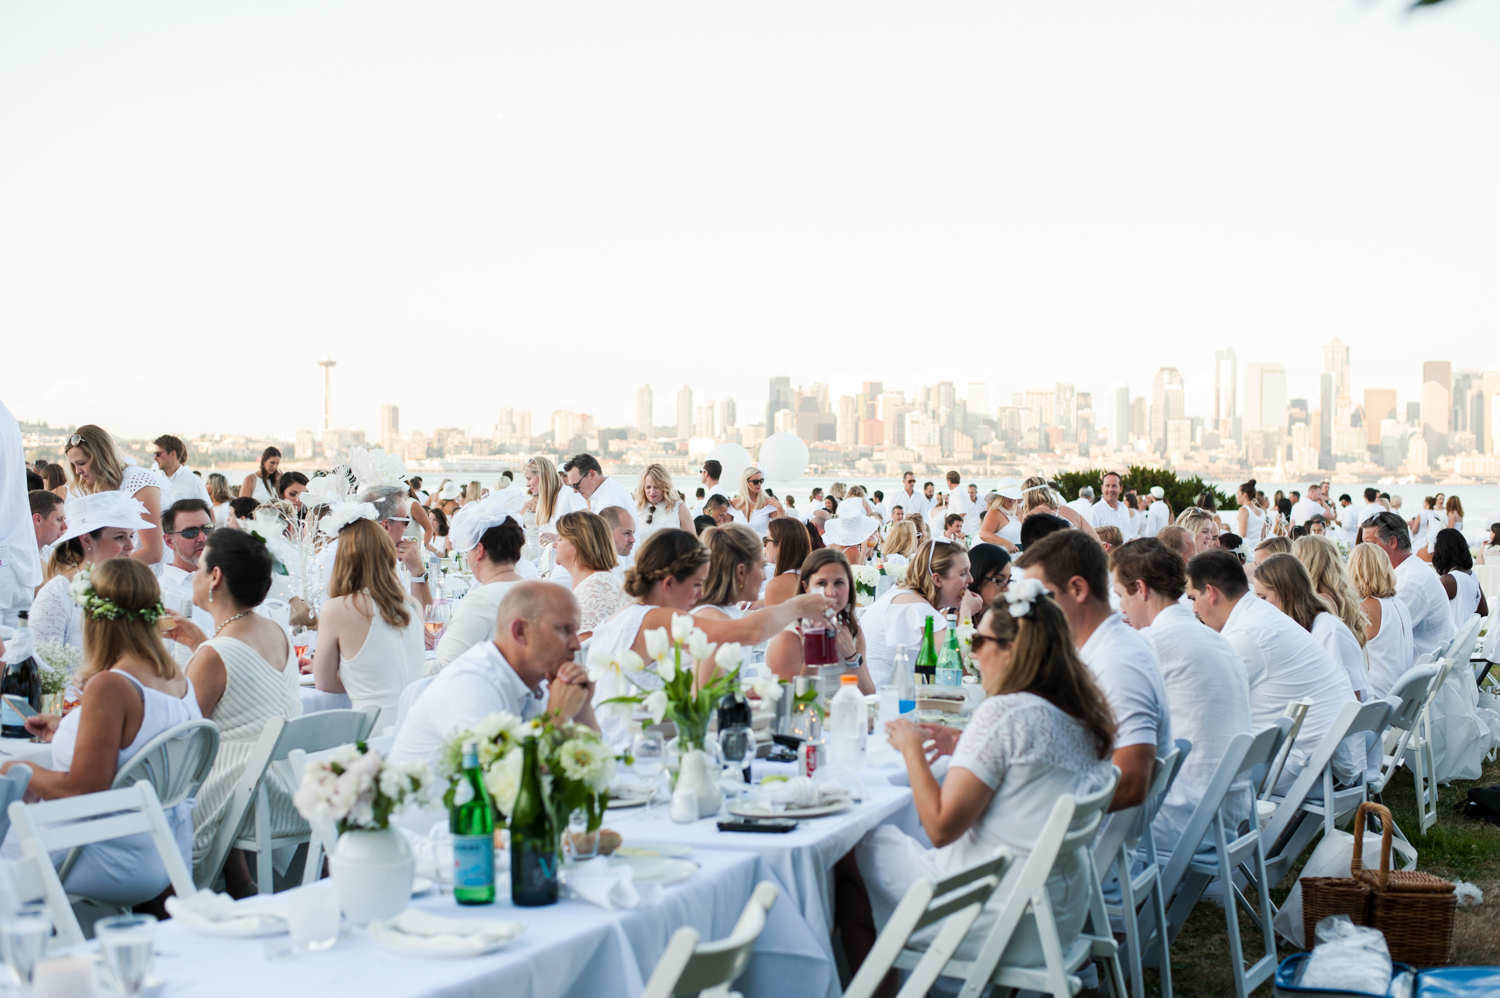 Diner en Blanc launched 30 years ago in Paris as a secret dining experience. Now events take place throughout the world,{ }where guests gather at a secret location to share a gourmet meal at the heart of one of their city's most beautiful locations. You don't know where you'll be going until day-of, and you have to bring your own table, chairs, a picnic basket, tablecloth, napkins, gourmet meal, dish-ware and glassware. The Seattle dinner's last minute location was revealed at around 6:45 p.m., and by 7:30 everyone was seated and ready at Don Armeni Park on Alki Beach. (Image: Elizabeth Crook/ Seattle Refined){ }